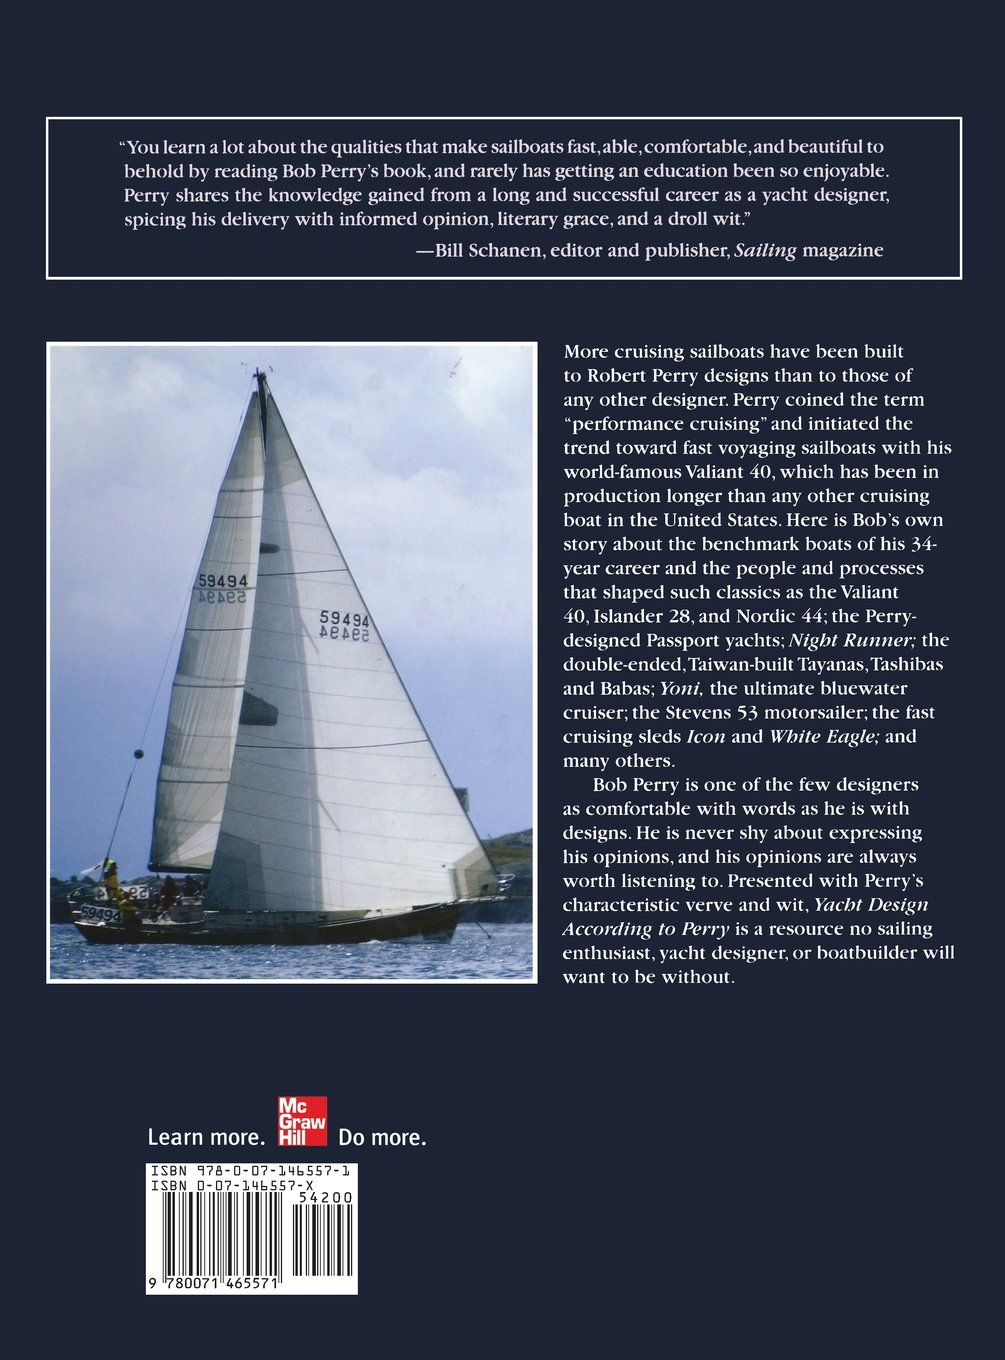 Yacht Design According to Perry: My Boats and What Shaped Them: Robert H.  Perry: 9780071465571: Amazon.com: Books